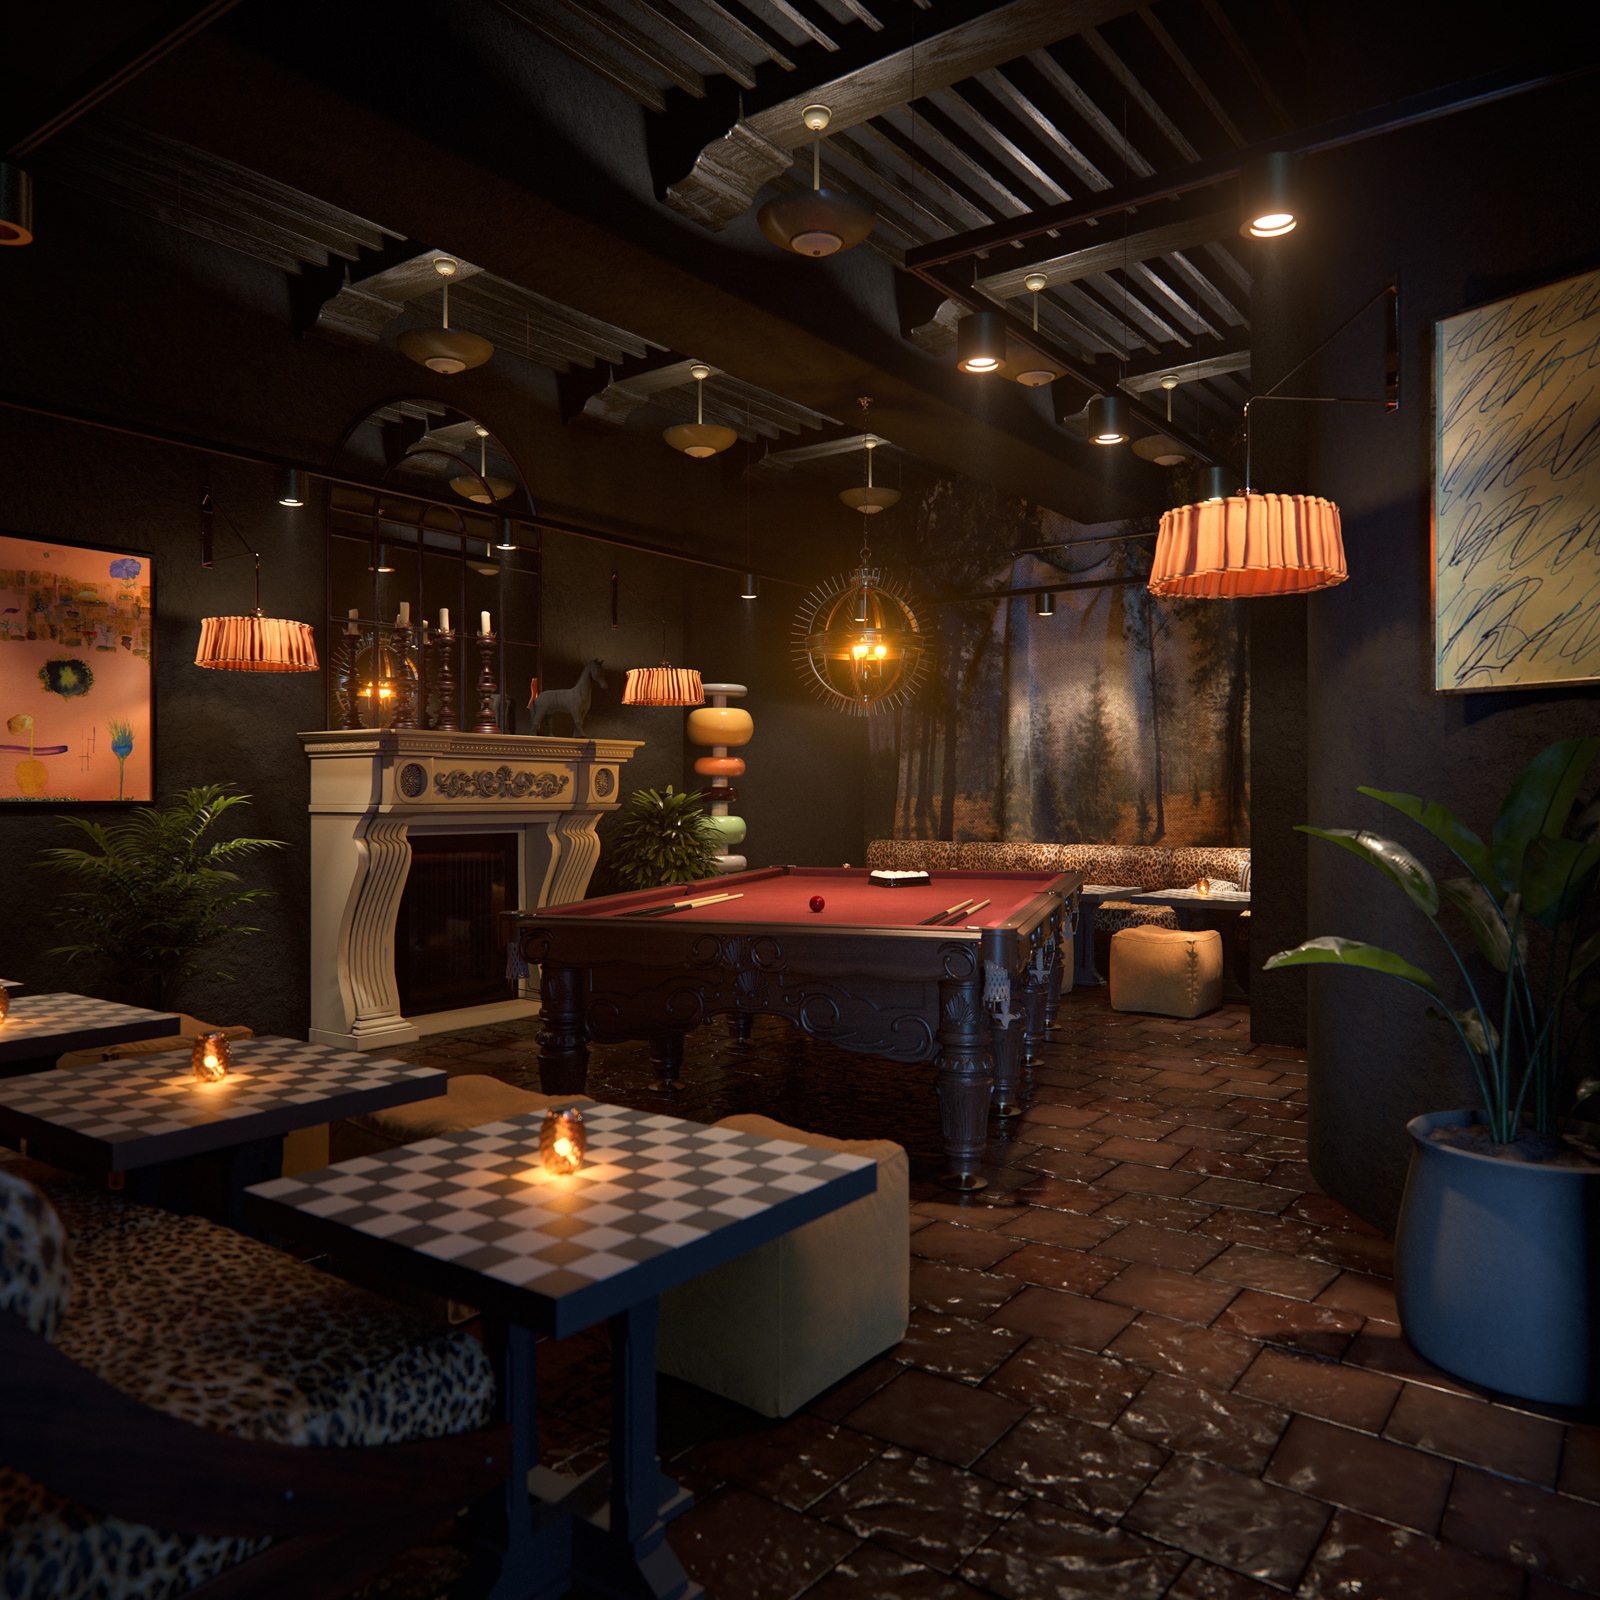 3D visualization of a billiard room in Bodega Negra restaurant interior rendered in dark shades with dim lights and random furniture finishes, Doha city, Qatar